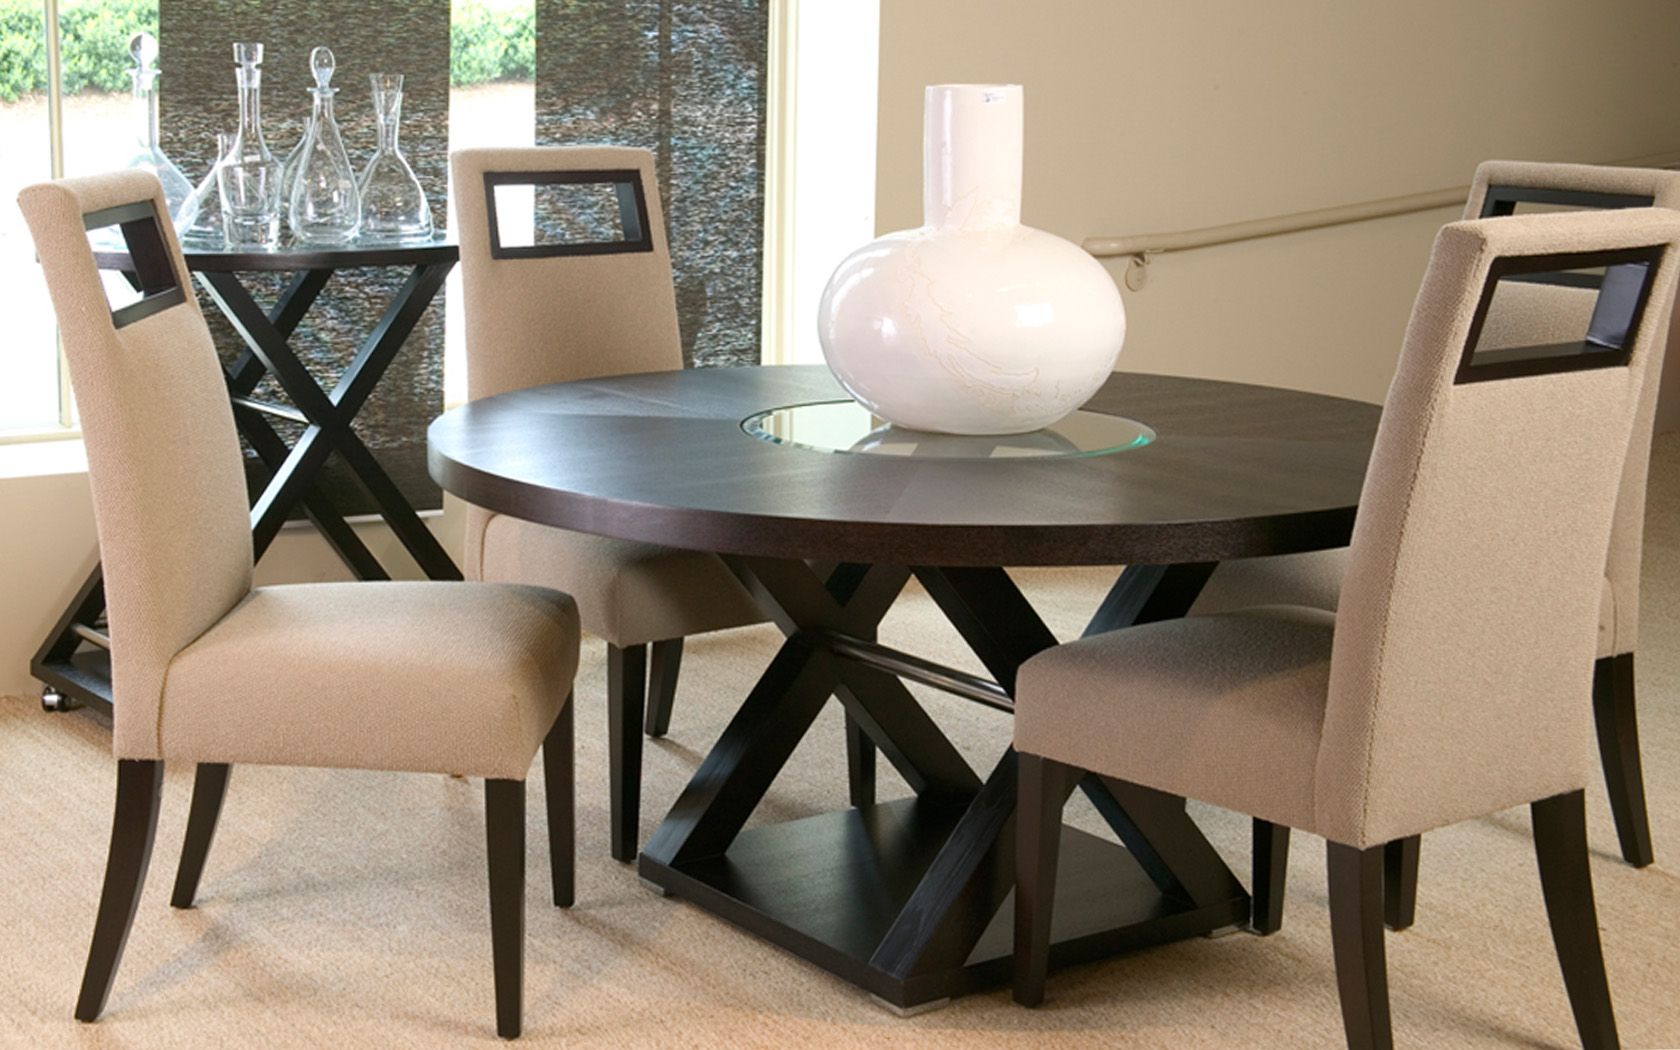 Halifax Round Dining Table W Glass Insert By Allan Copley Designs